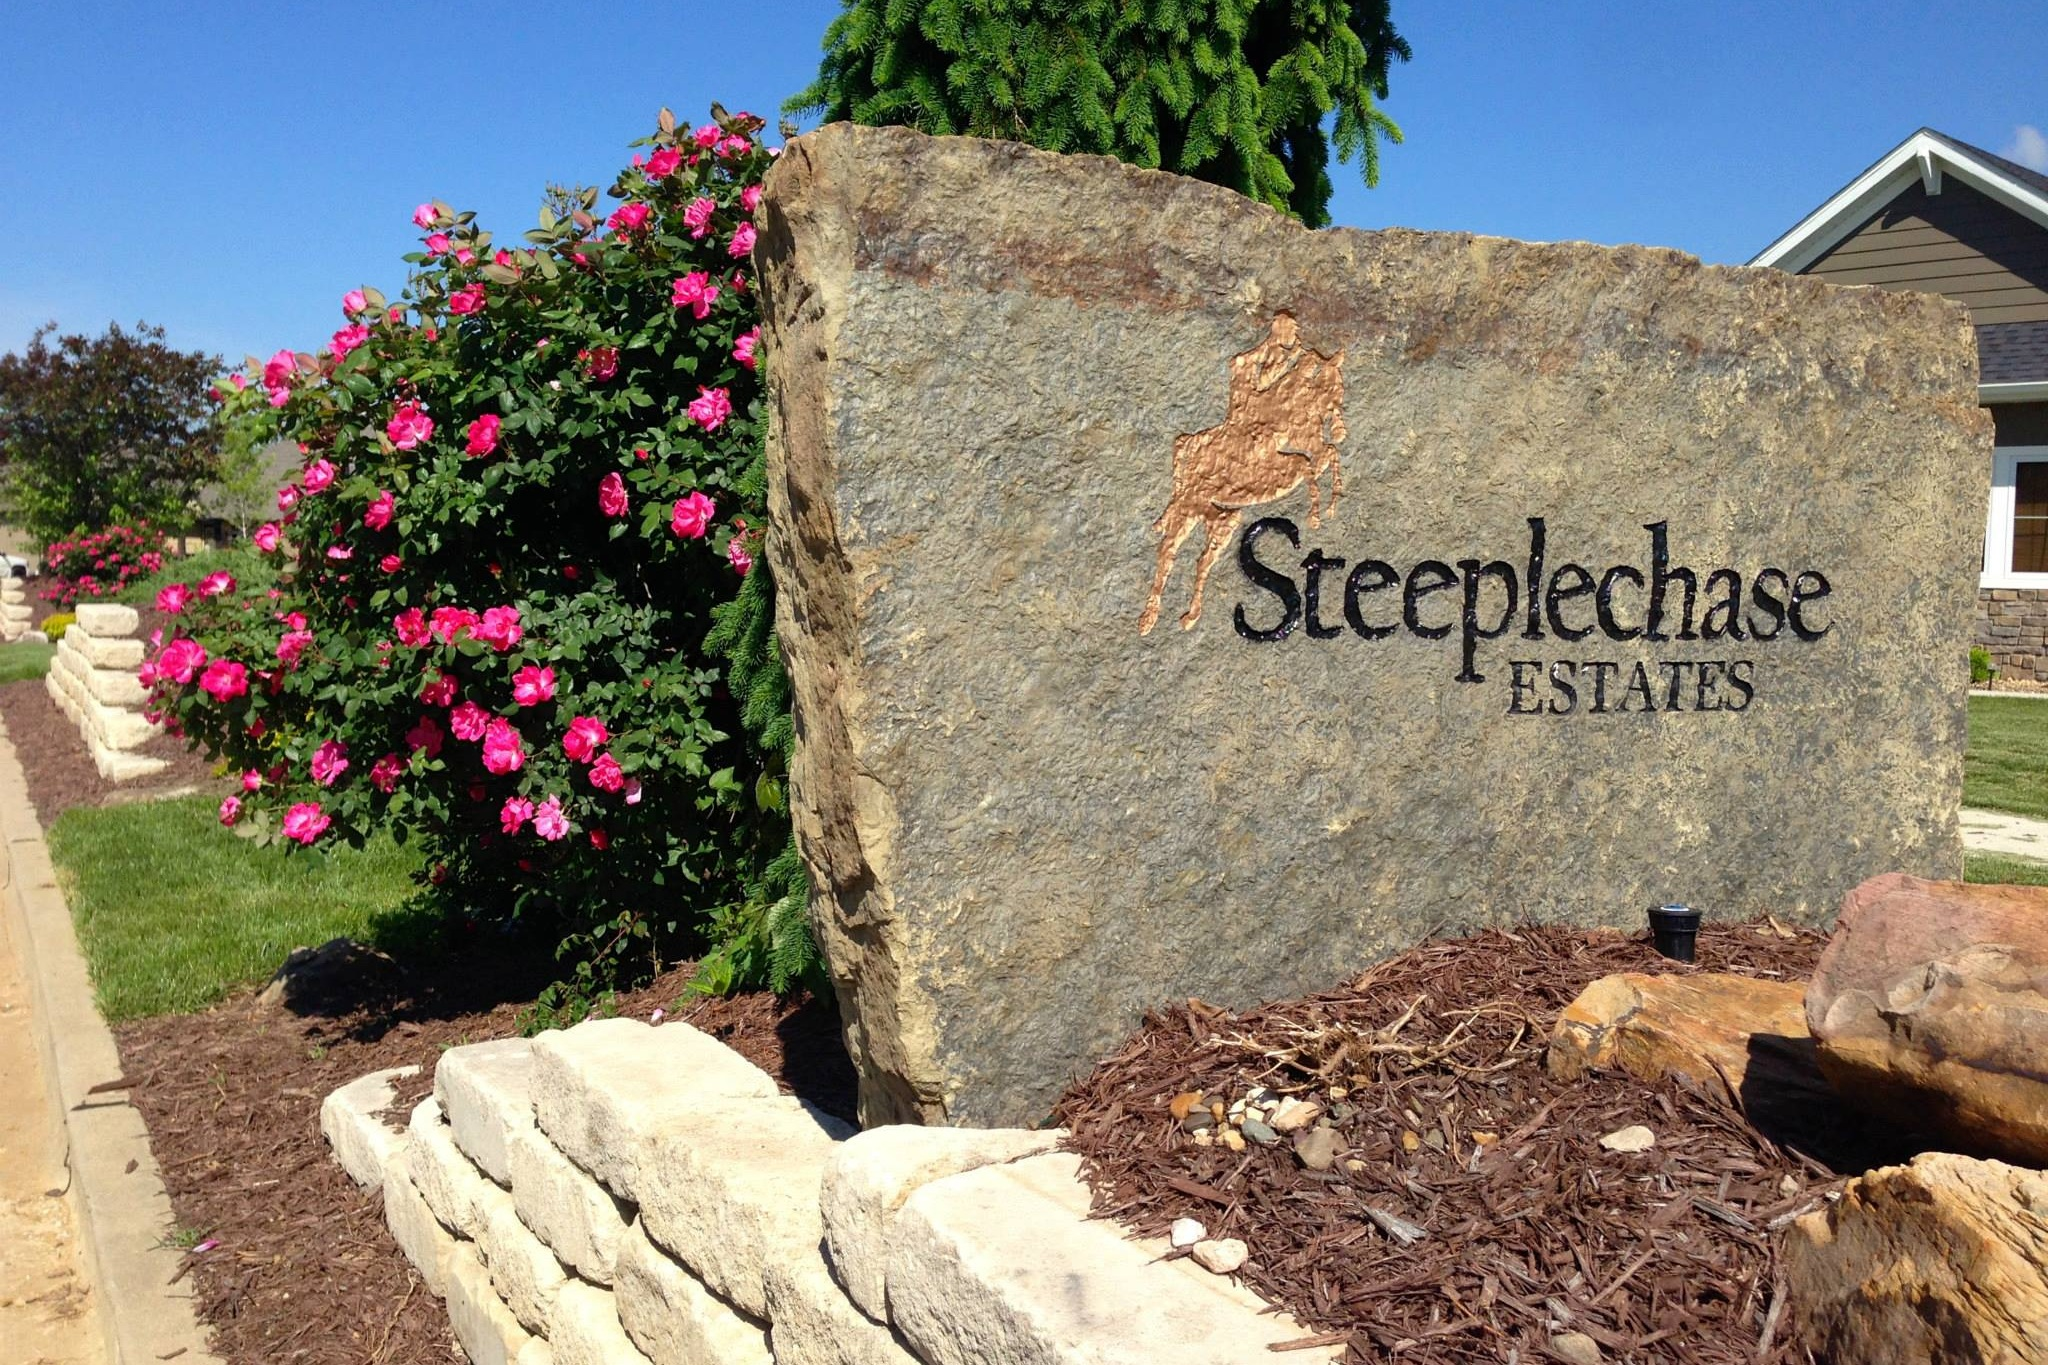 Steeplechase Estates - New slab and walk-out homes from the mid $200,000s to the mid $500,000s!